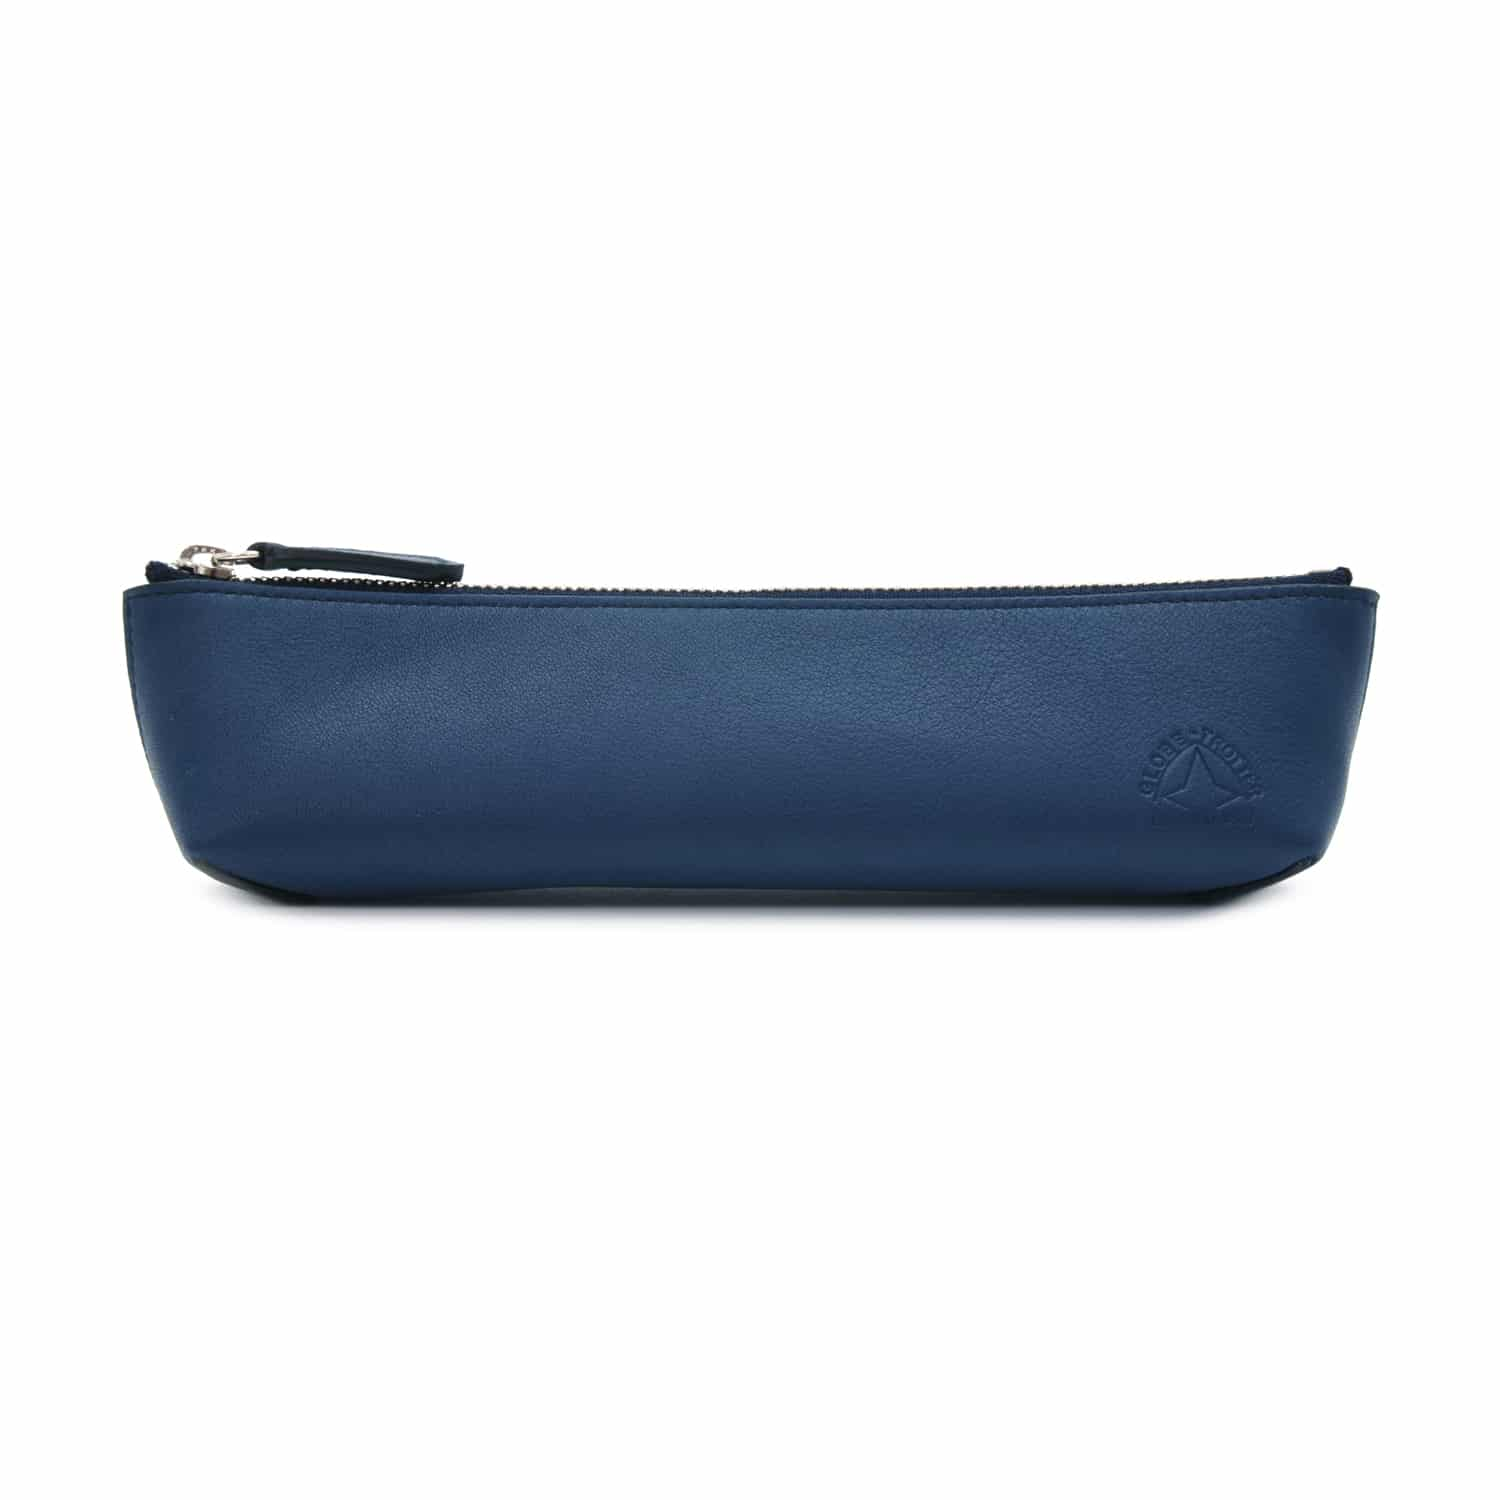 Centenary Leather · Pencil Case - Navy